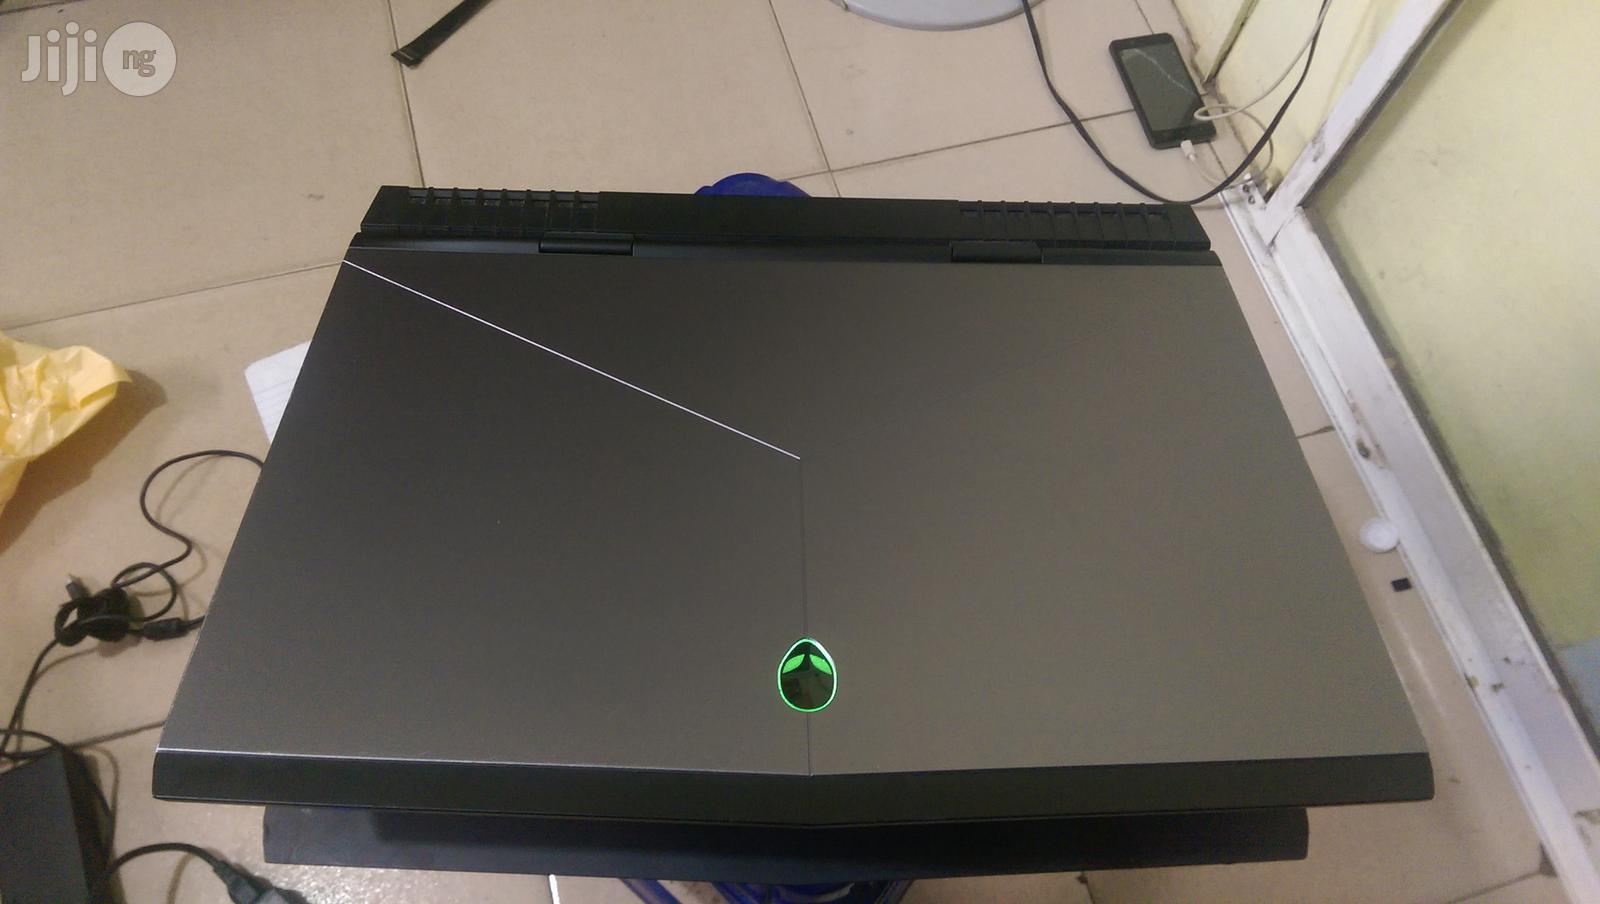 Laptop Dell Alienware 17 R4 16GB Intel Core i7 SSHD (Hybrid) 1T | Laptops & Computers for sale in Ikeja, Lagos State, Nigeria